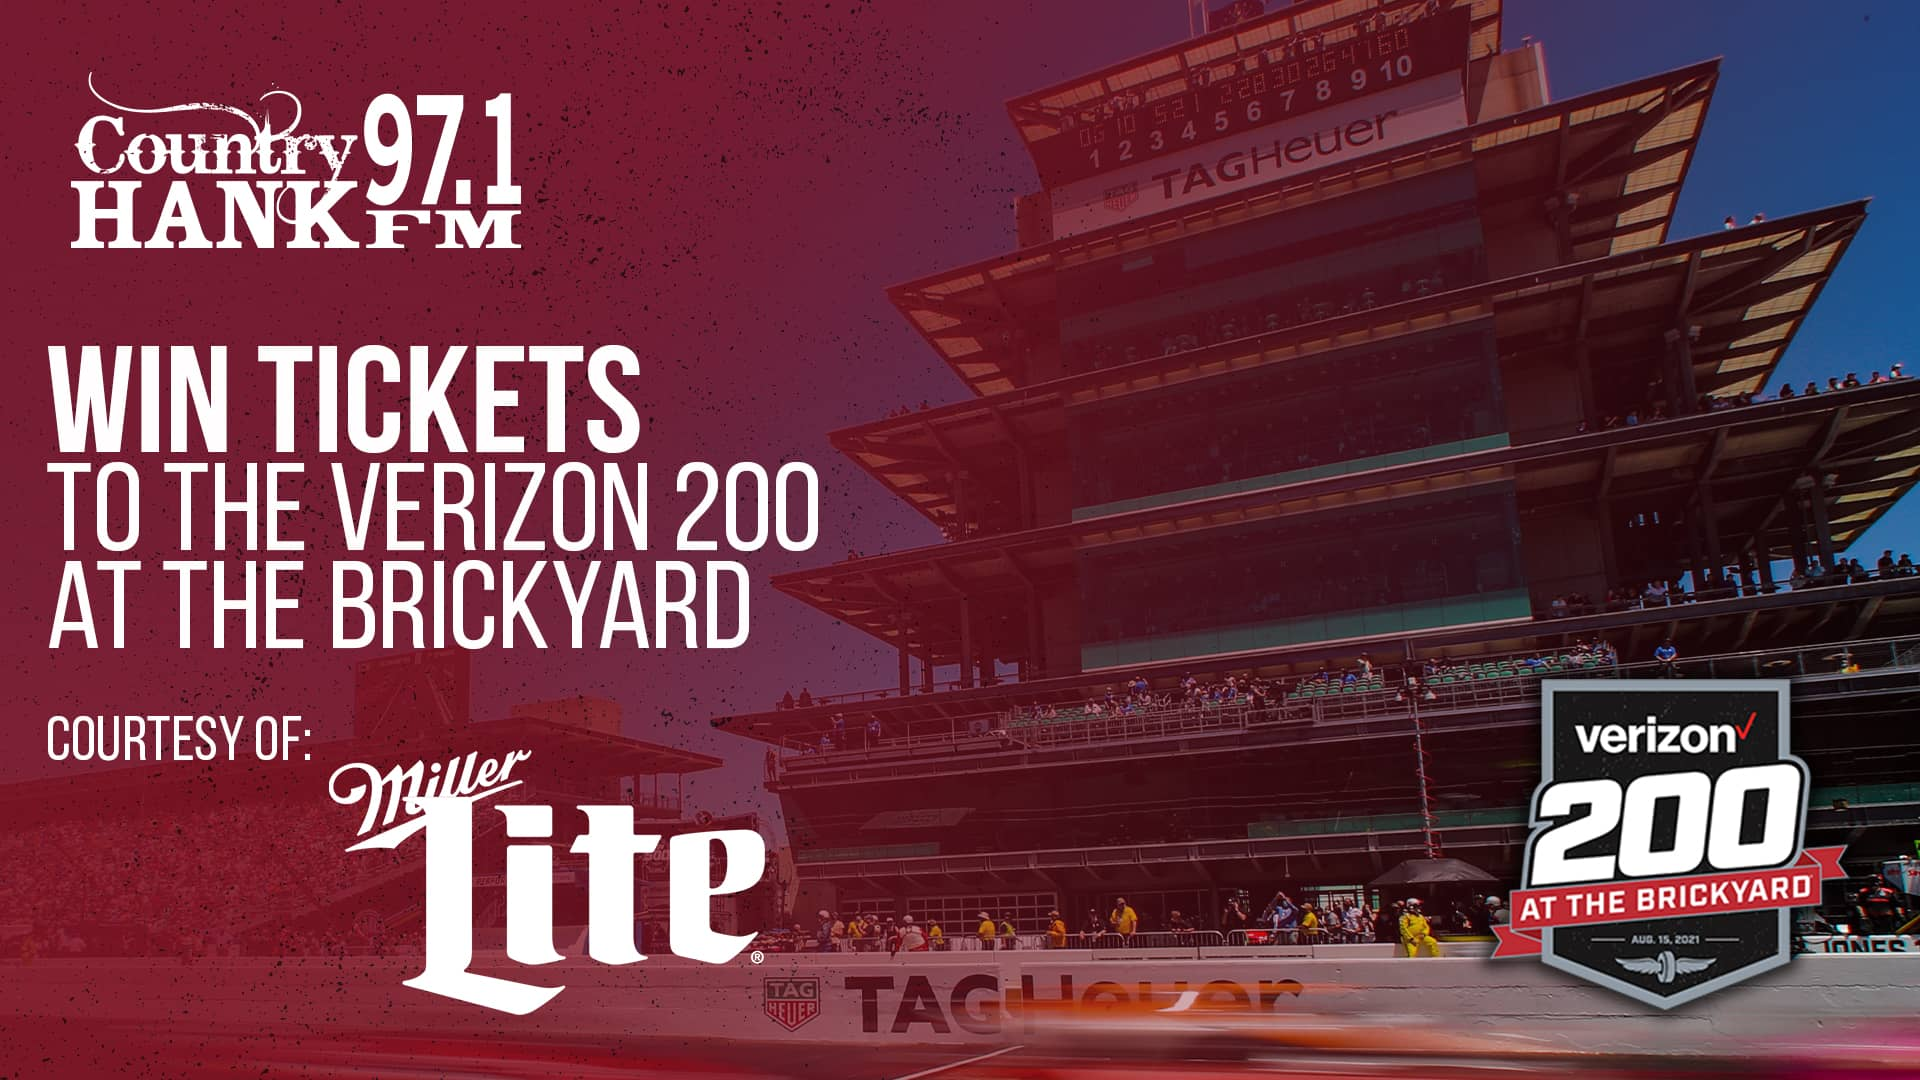 Pagoda win tickets to the verizon 200 at the brickyard courtesy of miller lite